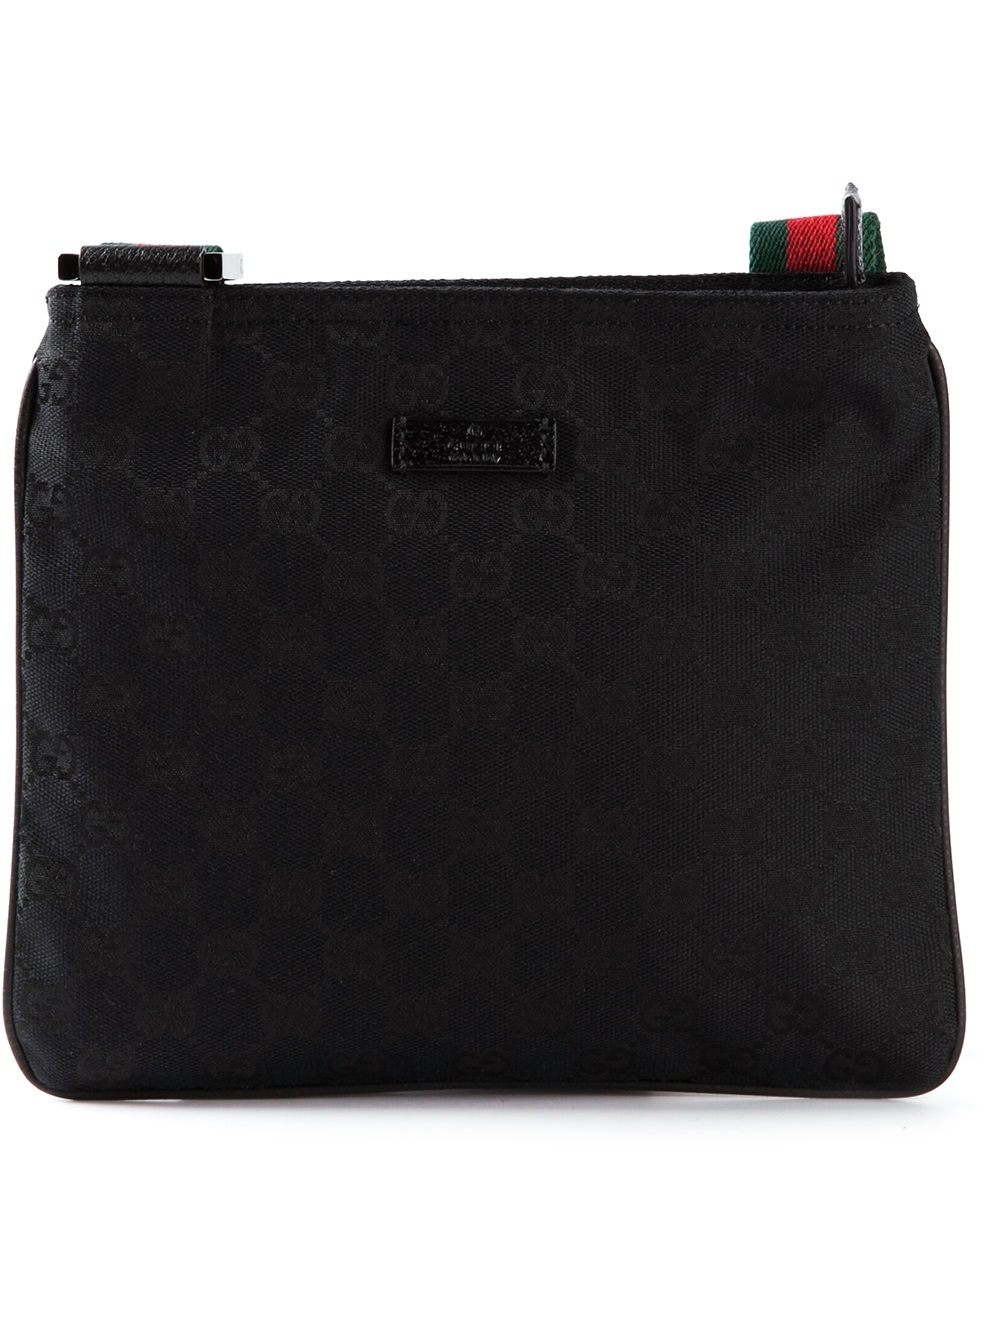 1d85a1f0712 Gucci Crossbody Bag With Red And Green Strap